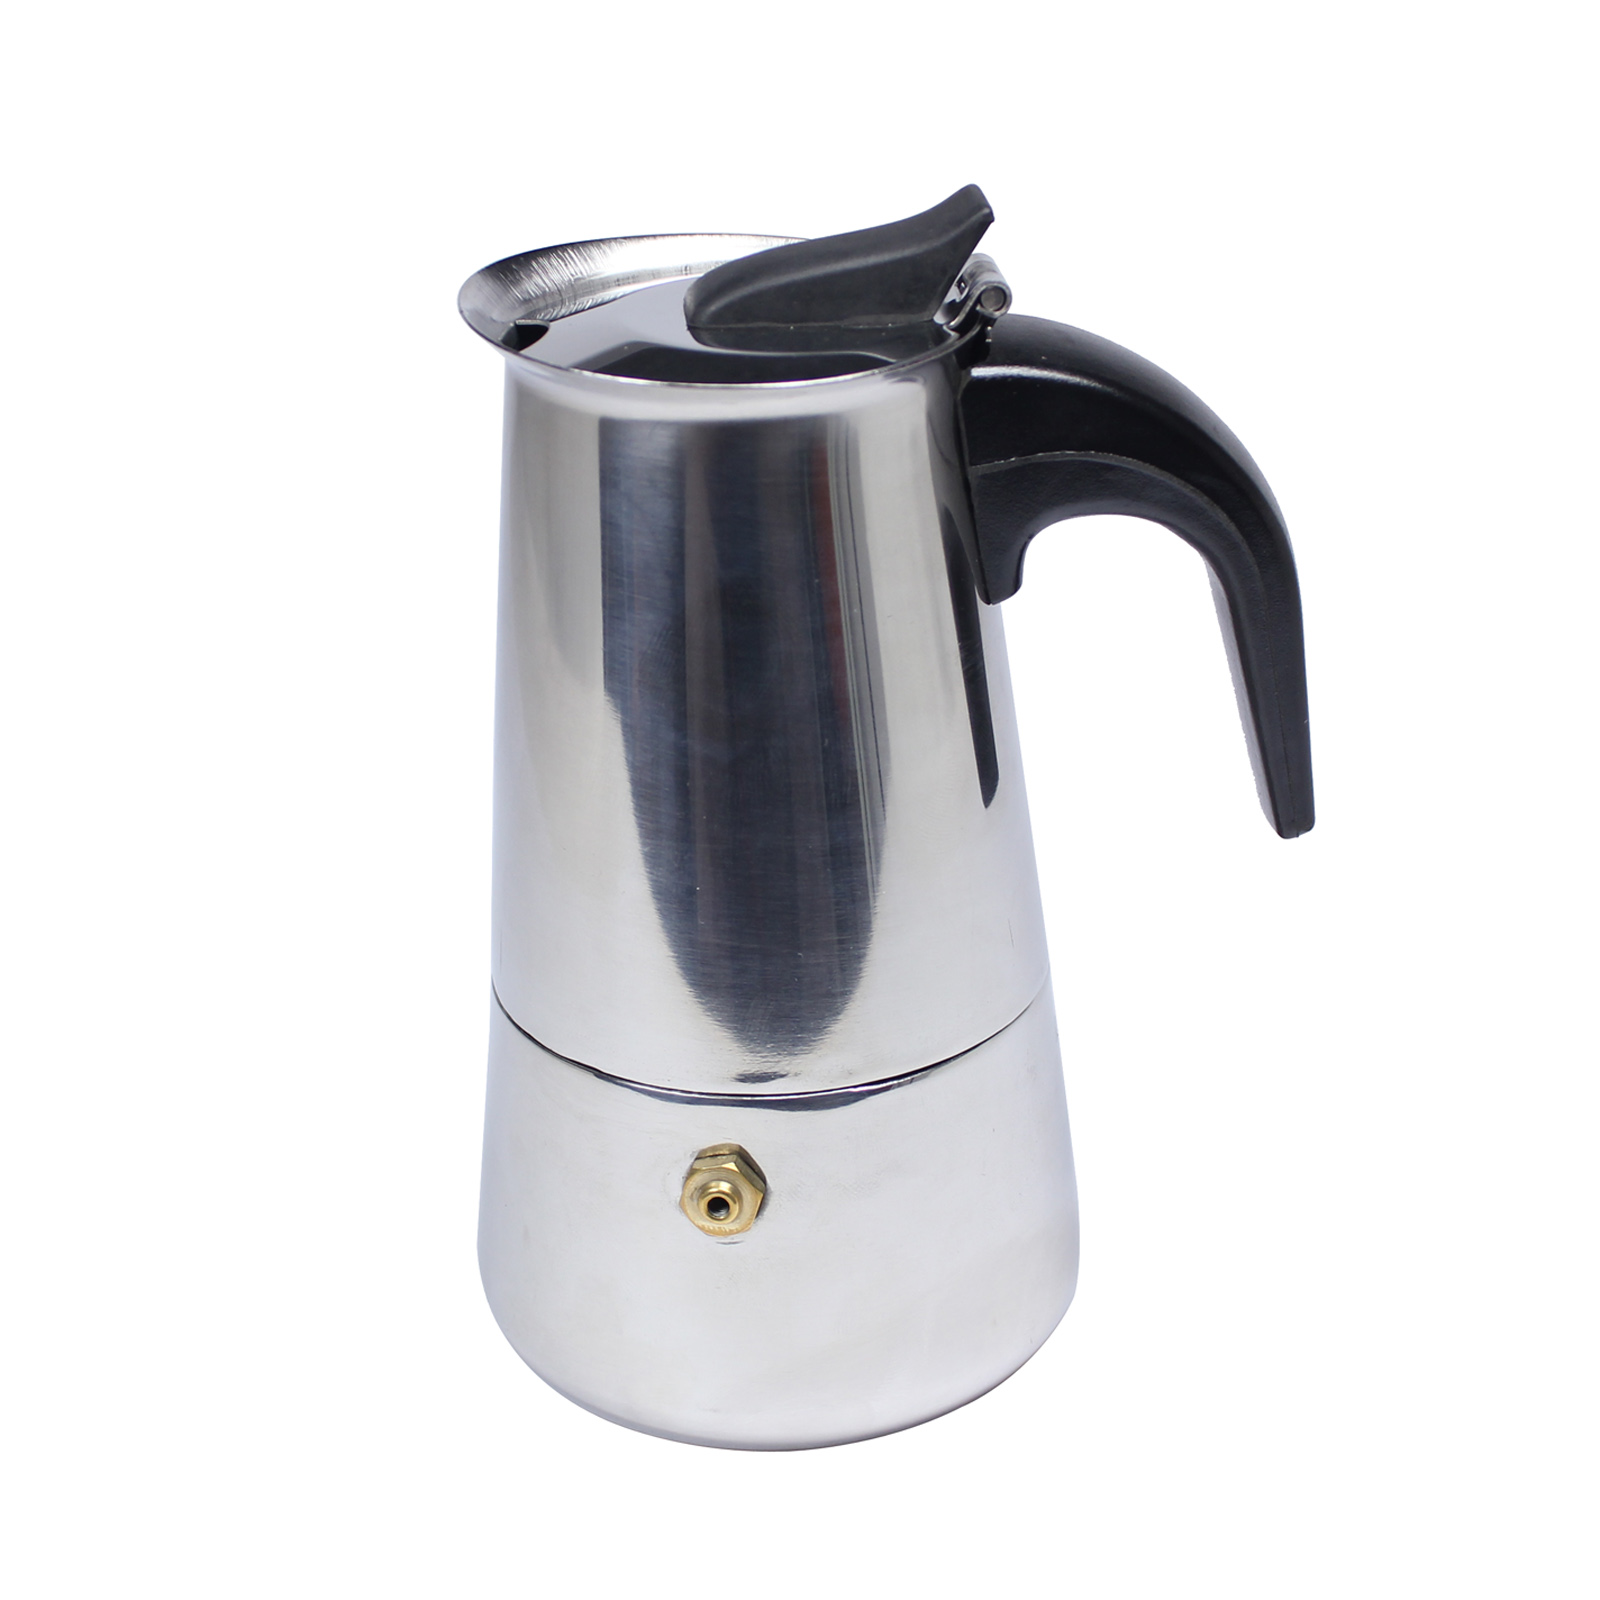 Italian Coffee Maker Small : 100ml Italian Espresso Coffee Maker Stainless Steel Moka Pot HJ360A AUD 13.68 - PicClick AU